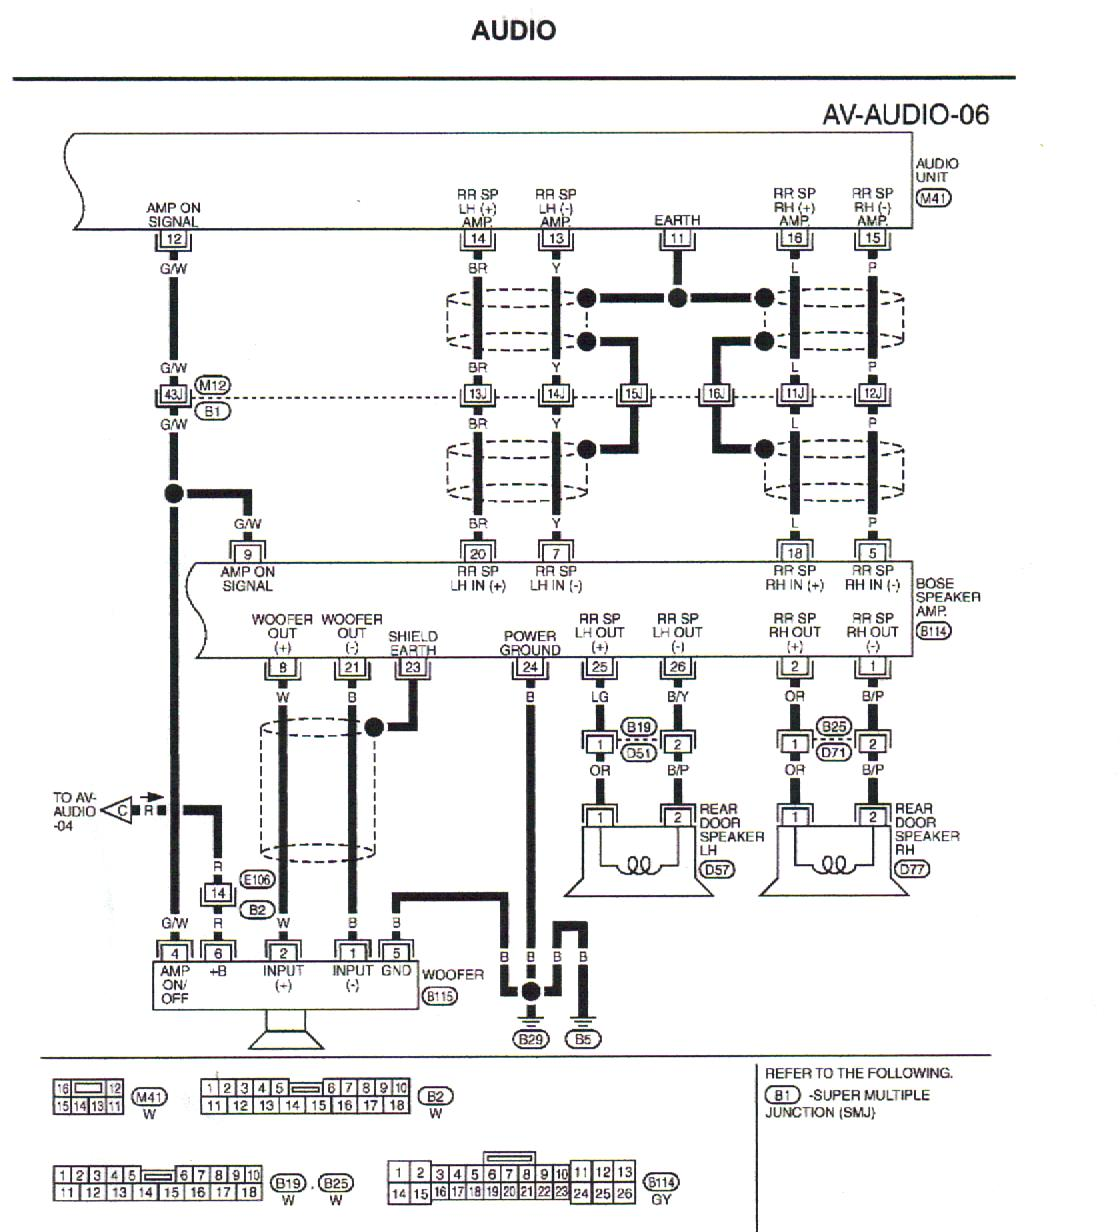 hight resolution of 2003 sedan bose wire colors with diagrams and pics page 2 mix 2003 sedan bose wire